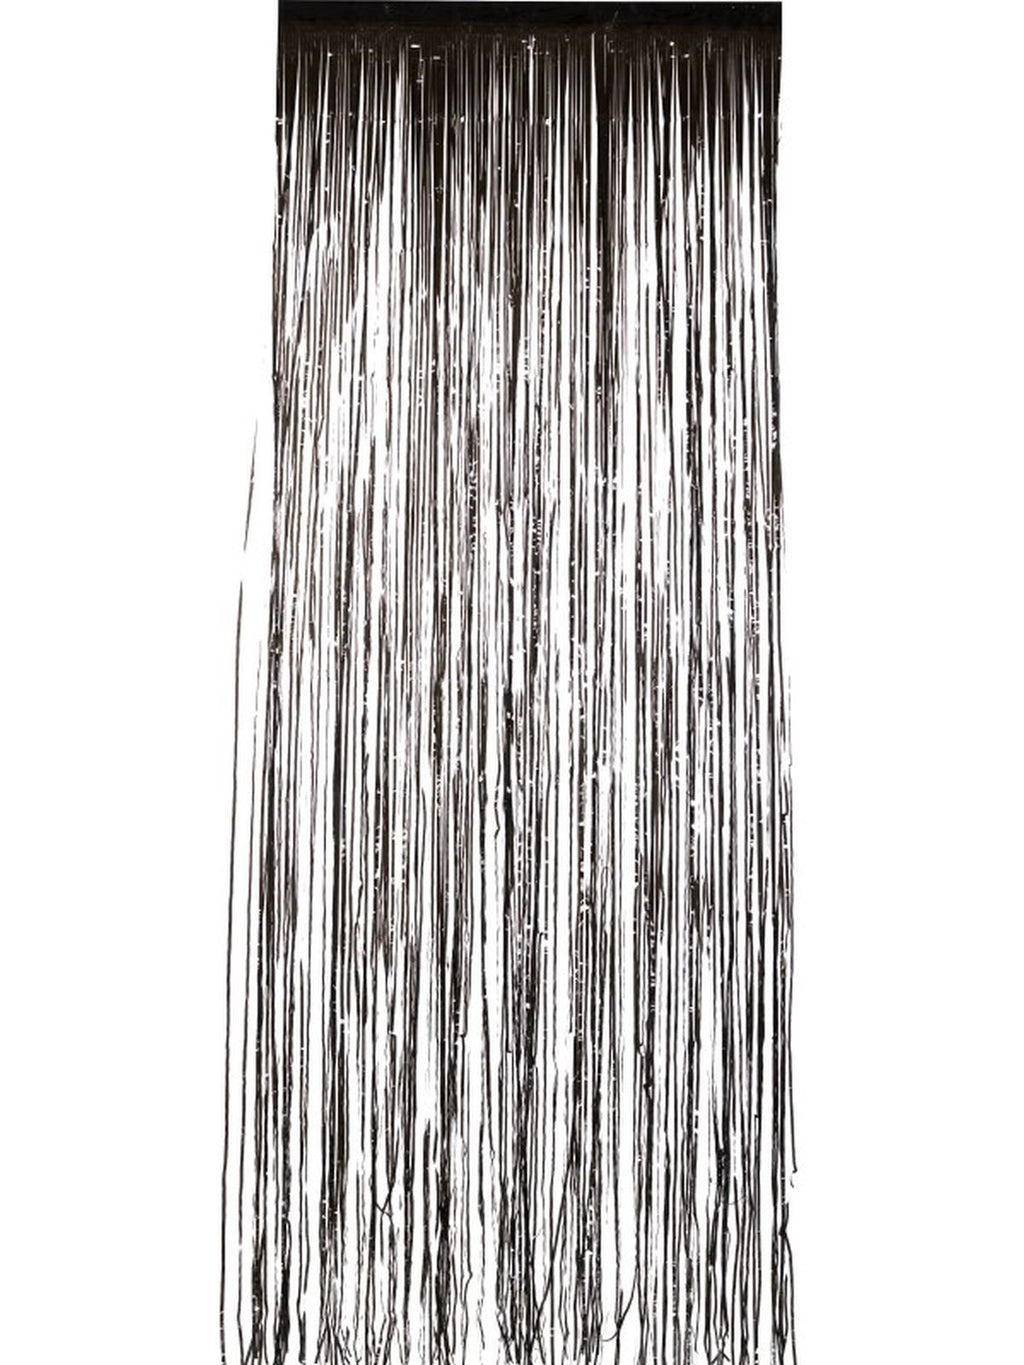 Shimmer Curtain Black